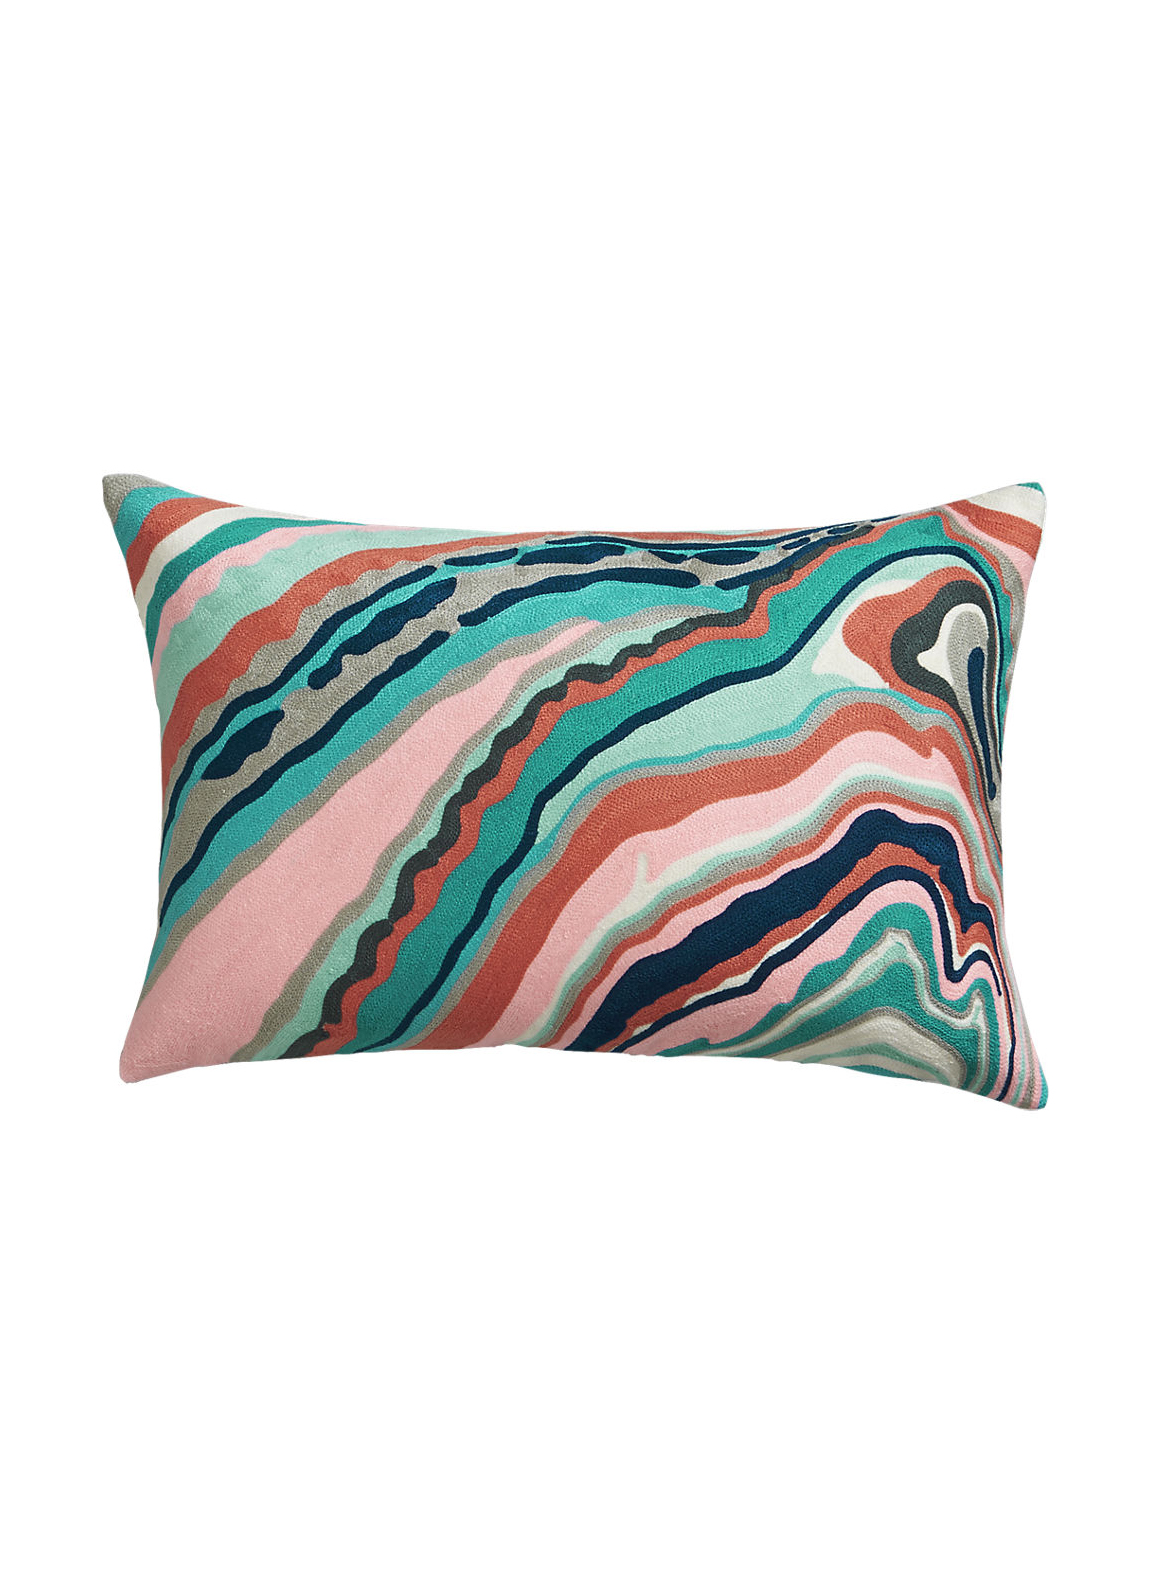 8 Pretty Pillows To Update Your Space Real Simple